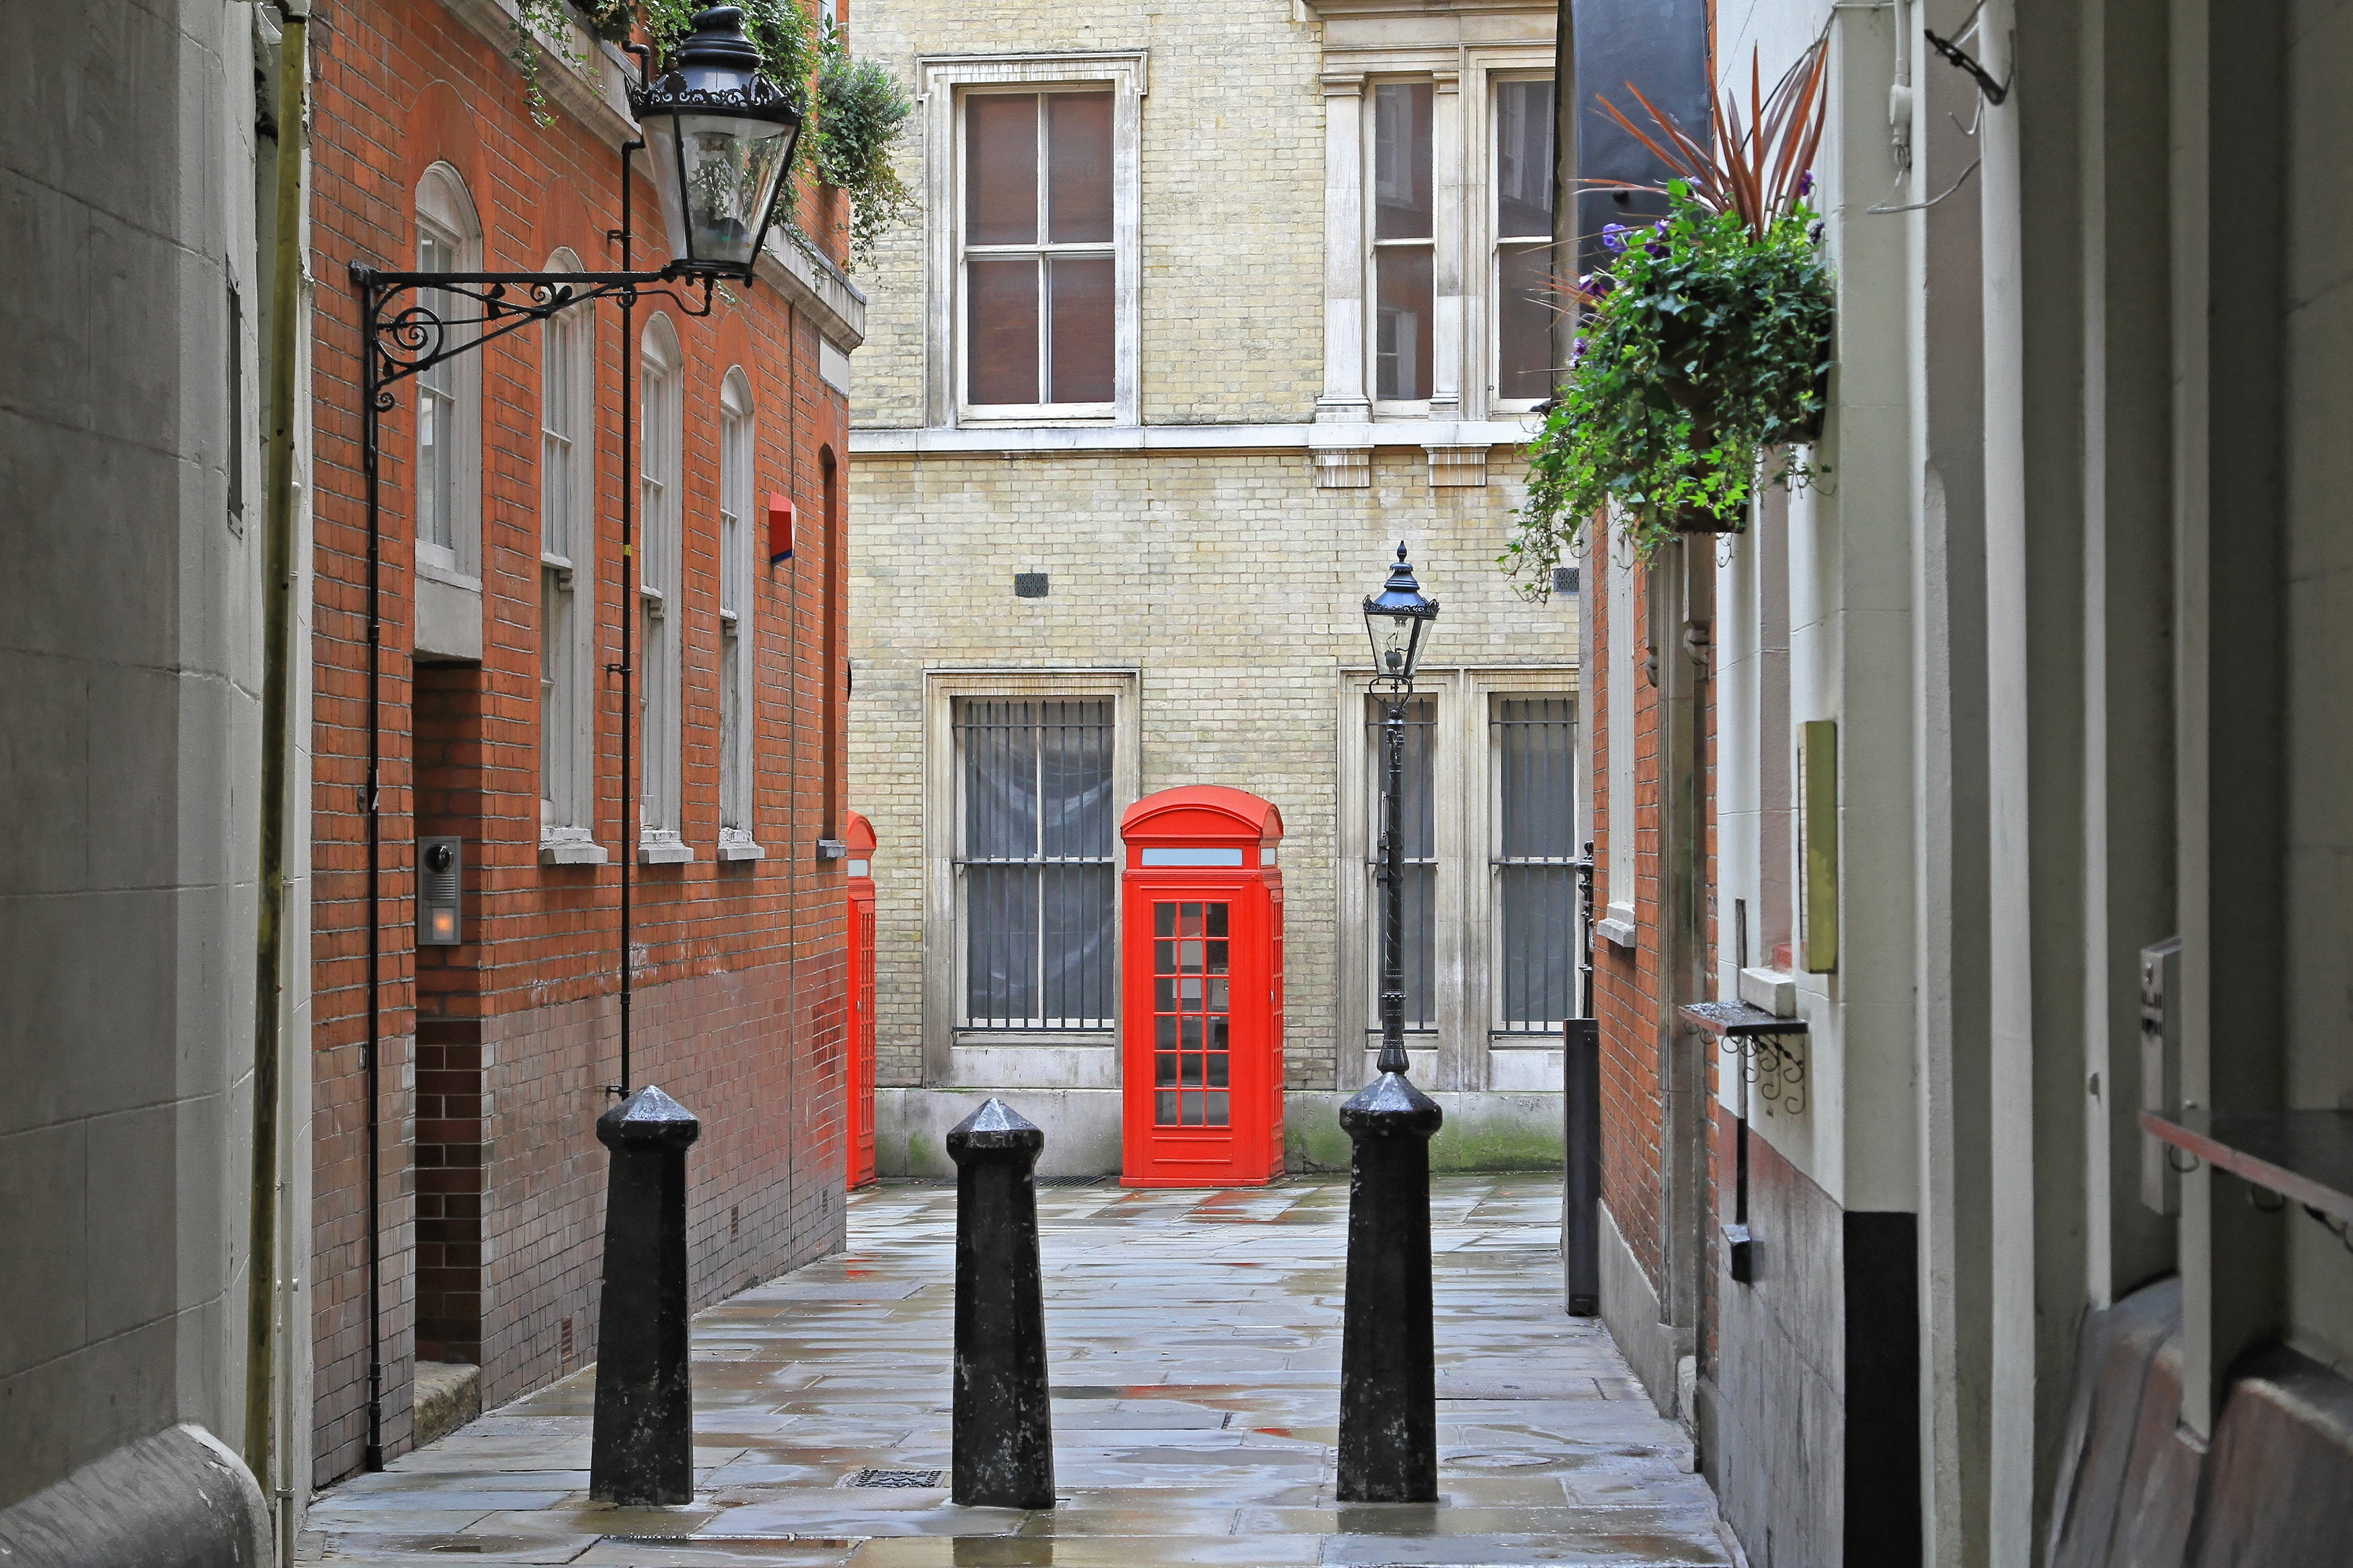 Traditional British Red Telephone Booth